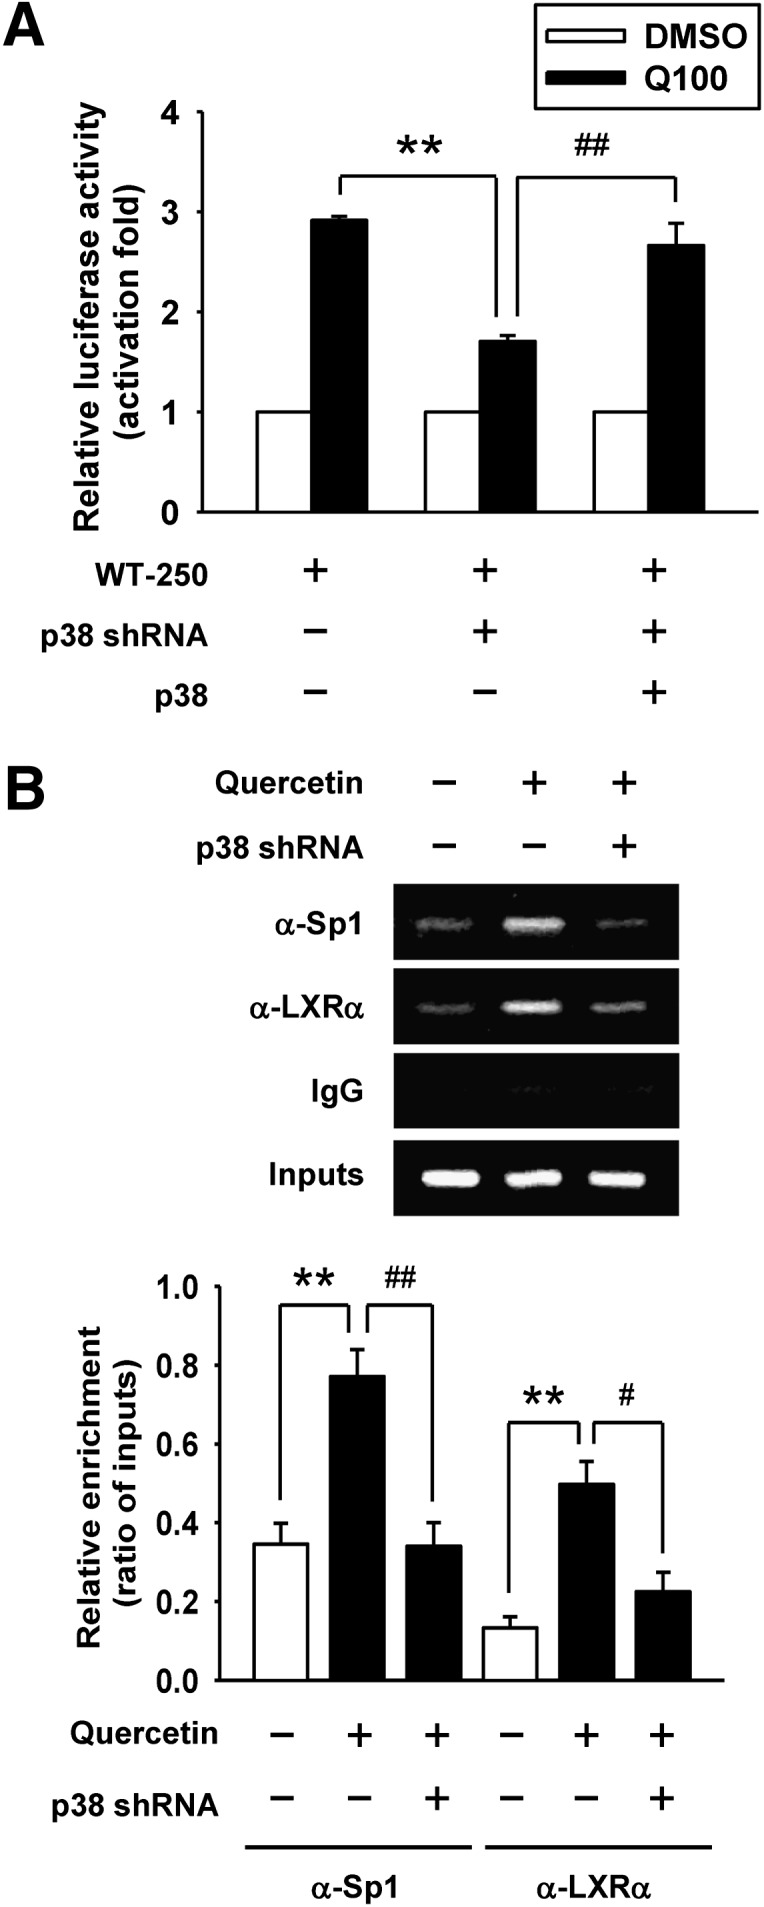 Effect of p38 knockdown by shRNA on the attenuation of Sp1 and LXRα binding to the ABCA1 promoter. A: Parental cells or p38 knockdown cells were transiently cotransfected with 0.5 μg of WT-250 construct, 0.5 μg of pRcCMV vector, and 0.5 μg of pCMV β-galactosidase plasmid. For p38 overexpression, p38 knockdown cells were transiently cotransfected with 0.5 μg of WT-250 construct, 0.5 μg of pRcCMV-p38 plasmid, and 0.5 μg of pCMV β-galactosidase plasmid. After transfection, cells were treated with 100 μM quercetin (Q100) for 24 h. Luciferase activity was normalized with β-galactosidase activity and expressed as fold changes in luciferase activity compared with respective control groups. The level of luciferase activity without quercetin treatment was given the value of 1. WT-250, −250/−1 region of ABCA1 promoter. B: ChIP assays were performed to observe the binding of Sp1 and LXRα to the ABCA1 promoter in p38 knockdown cells as described in Materials and Methods. Nonimmune IgG was used as the negative control. The results of ChIP assays were evaluated by PCR and gel electrophoresis. Values are quantified by densitometer and expressed as ratio relative to inputs. Bars are mean ± SEM (n = 3). ** P